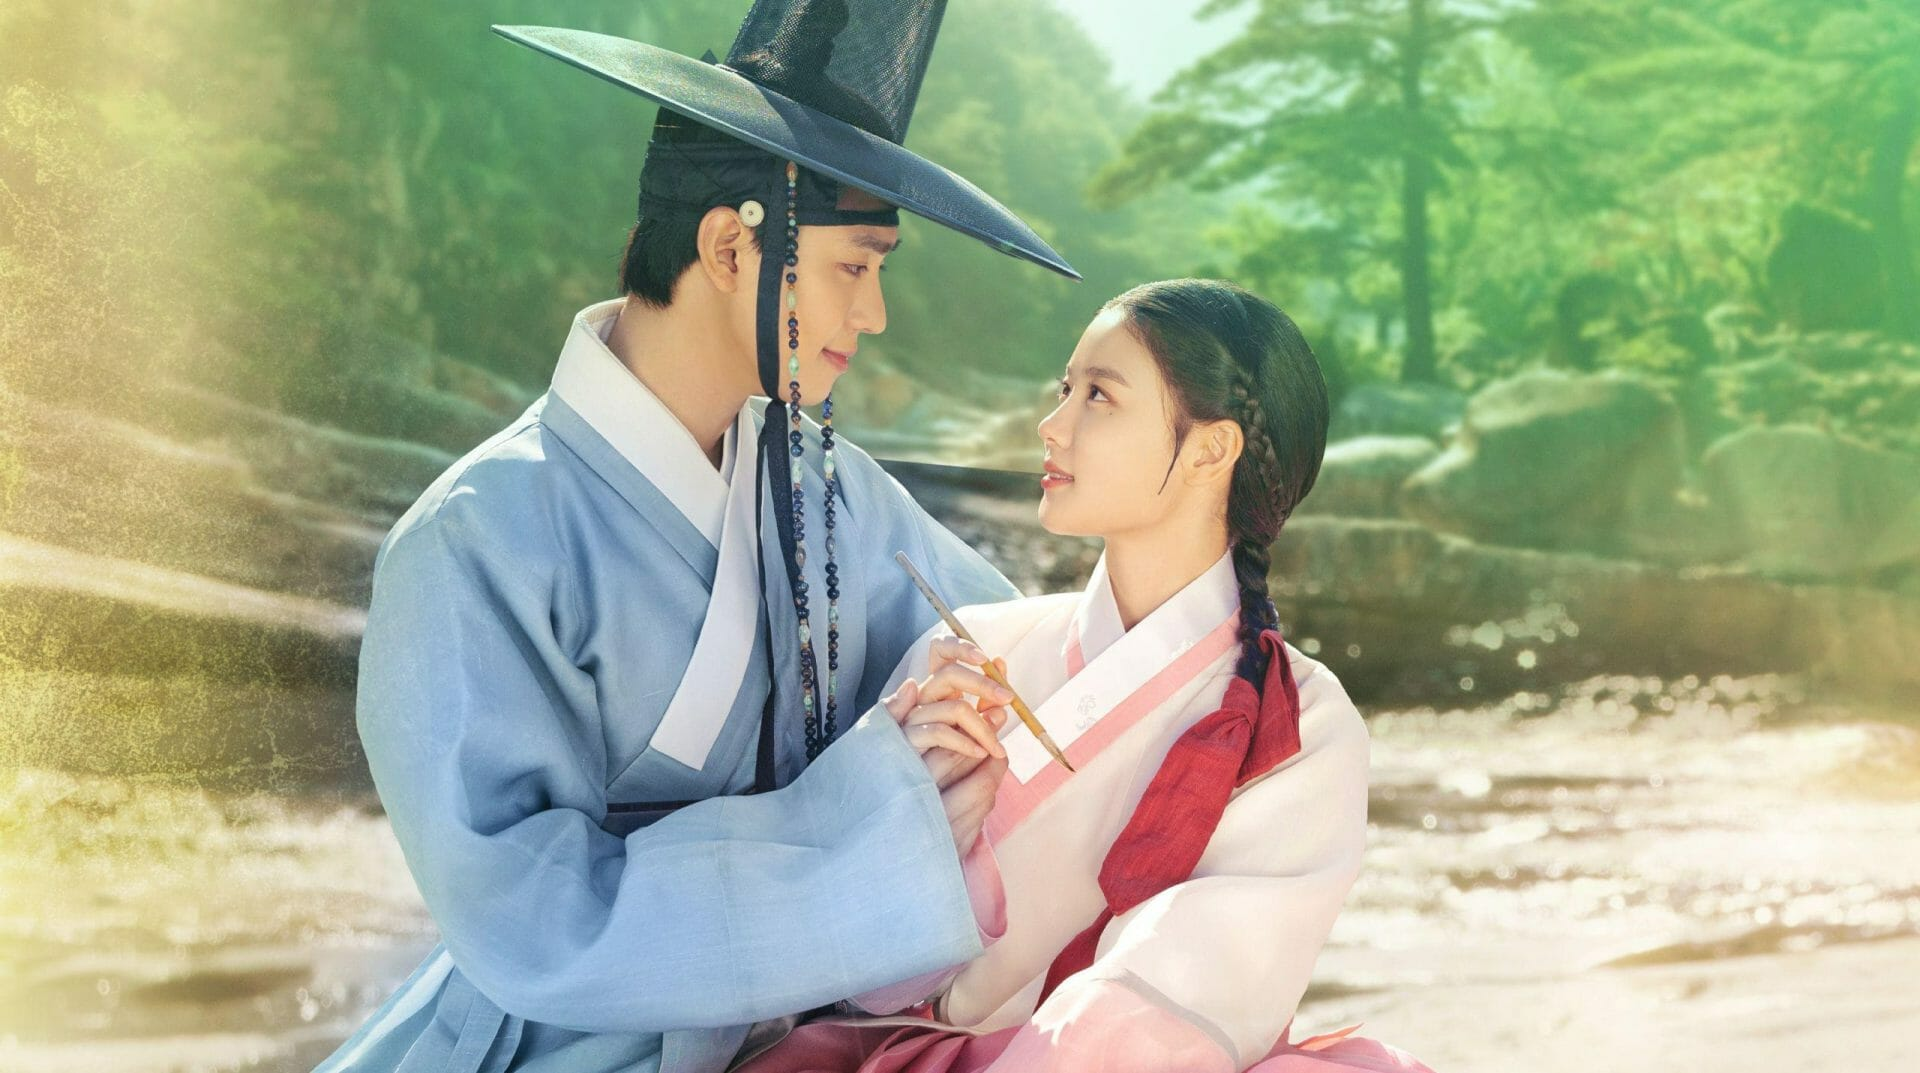 Lovers of The Red Sky Episode 6